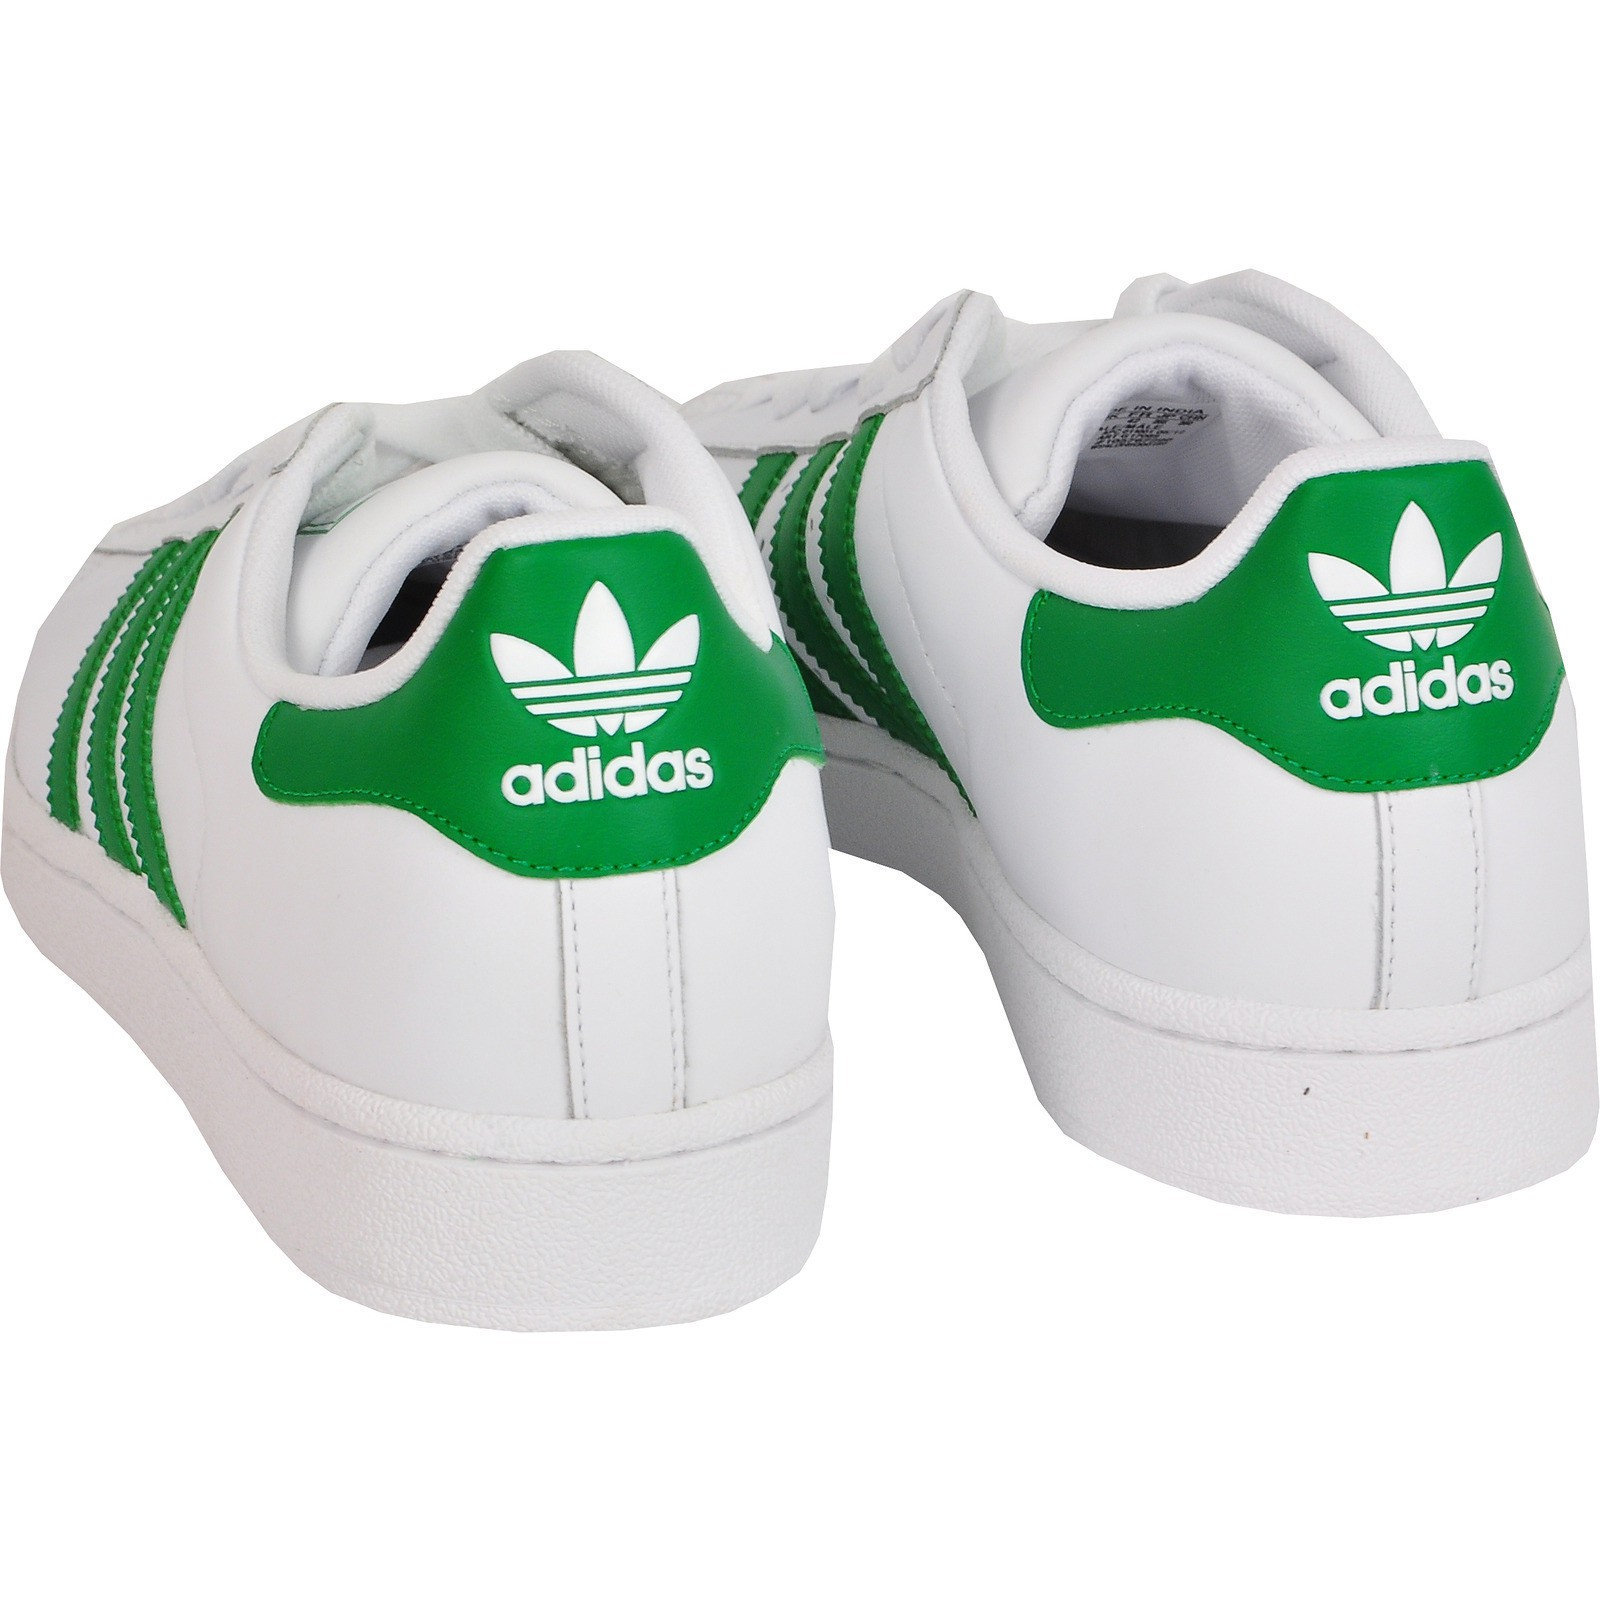 Adidas Originals Grün